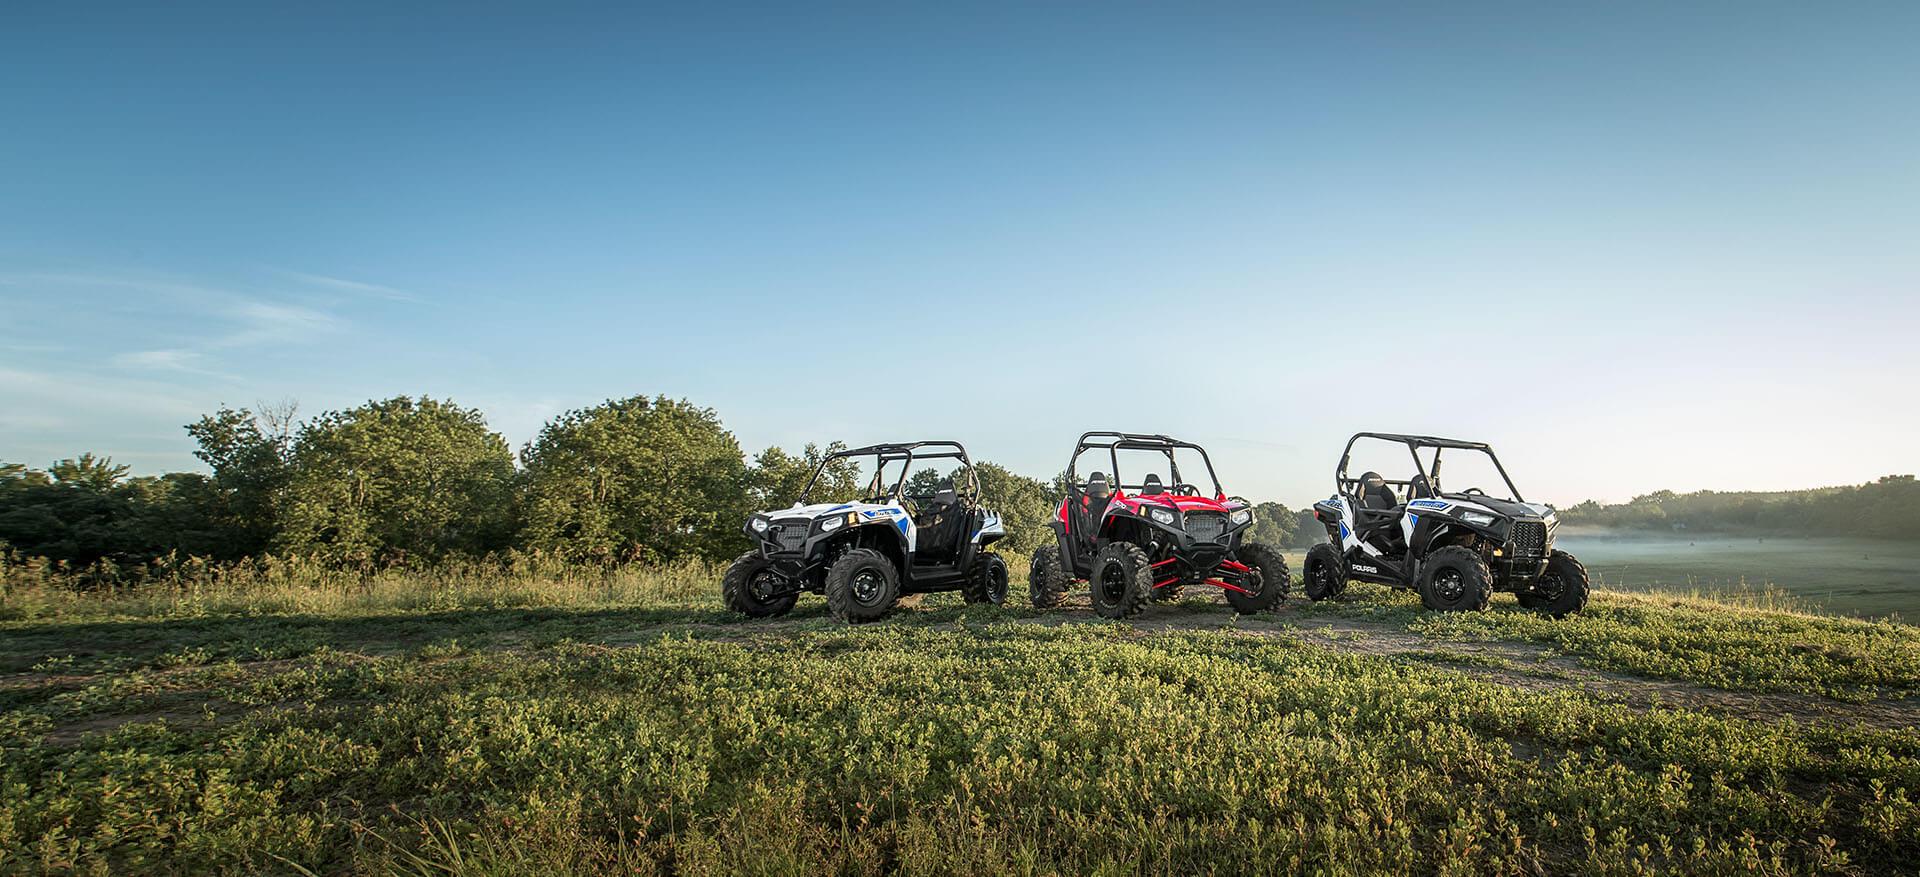 rzr-570-media-location-4-lg